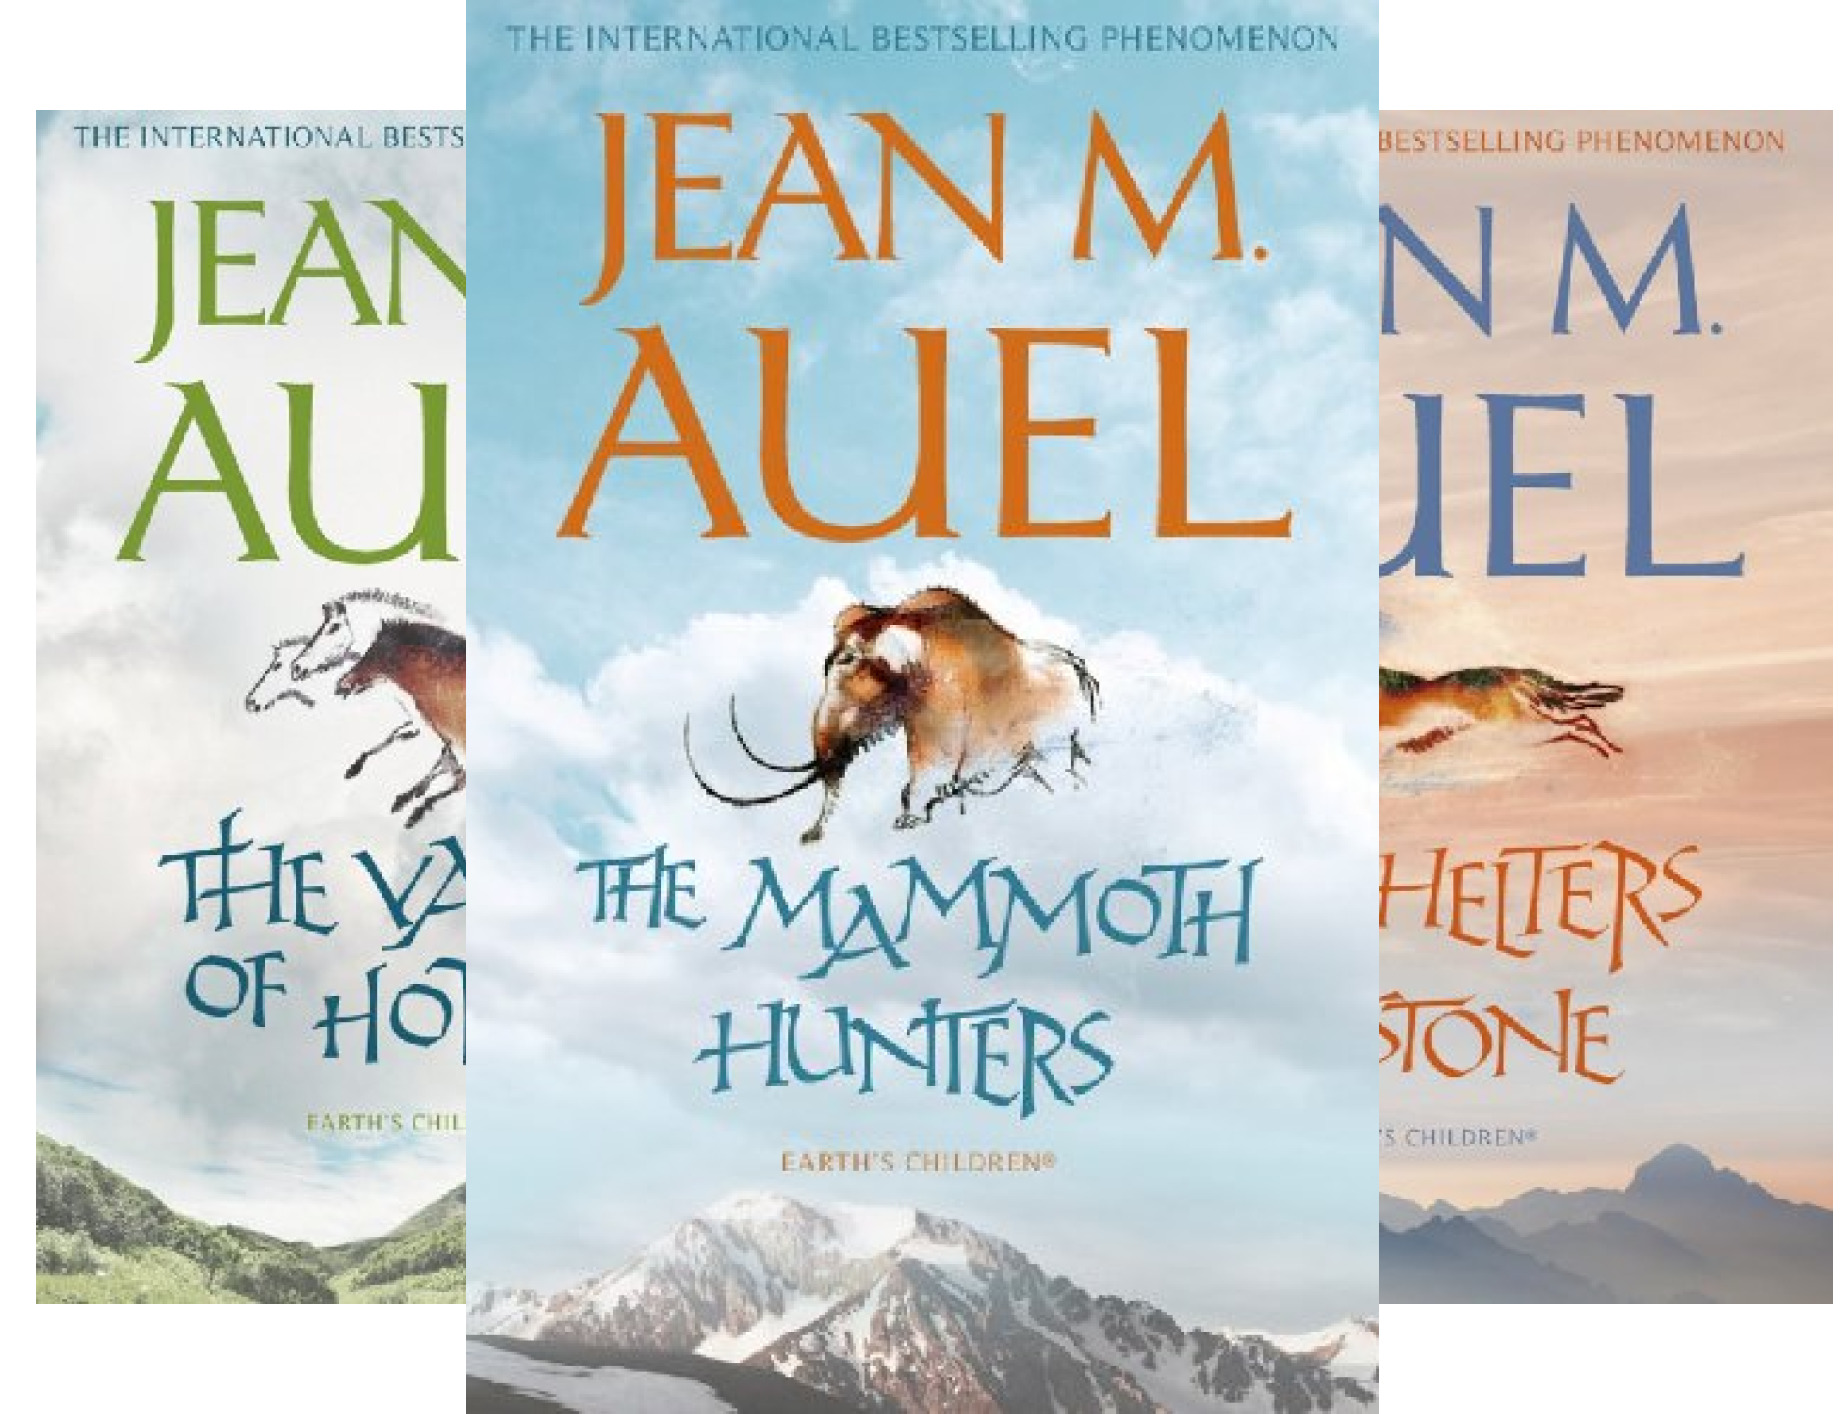 Jean Auel (The Mammoth Hunters / The Valley of Horses / The Shelters of Stone / Clan of the Cave Bear / Plains of Passage) (5 Book Series)